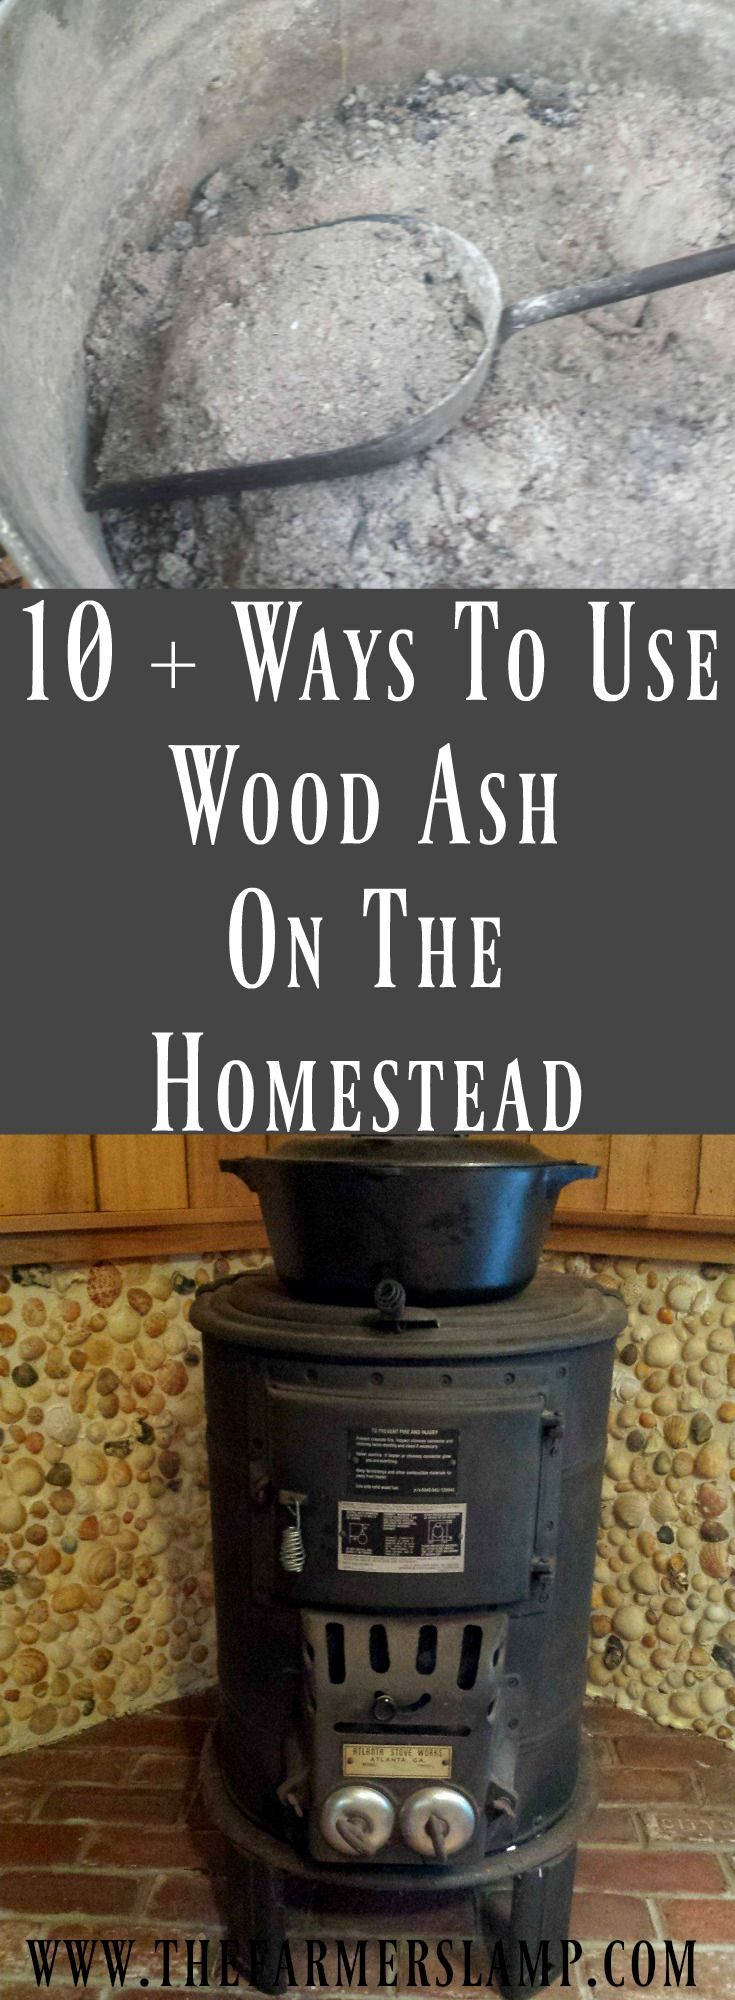 10 + Ways To Use Wood Ash On The Homestead